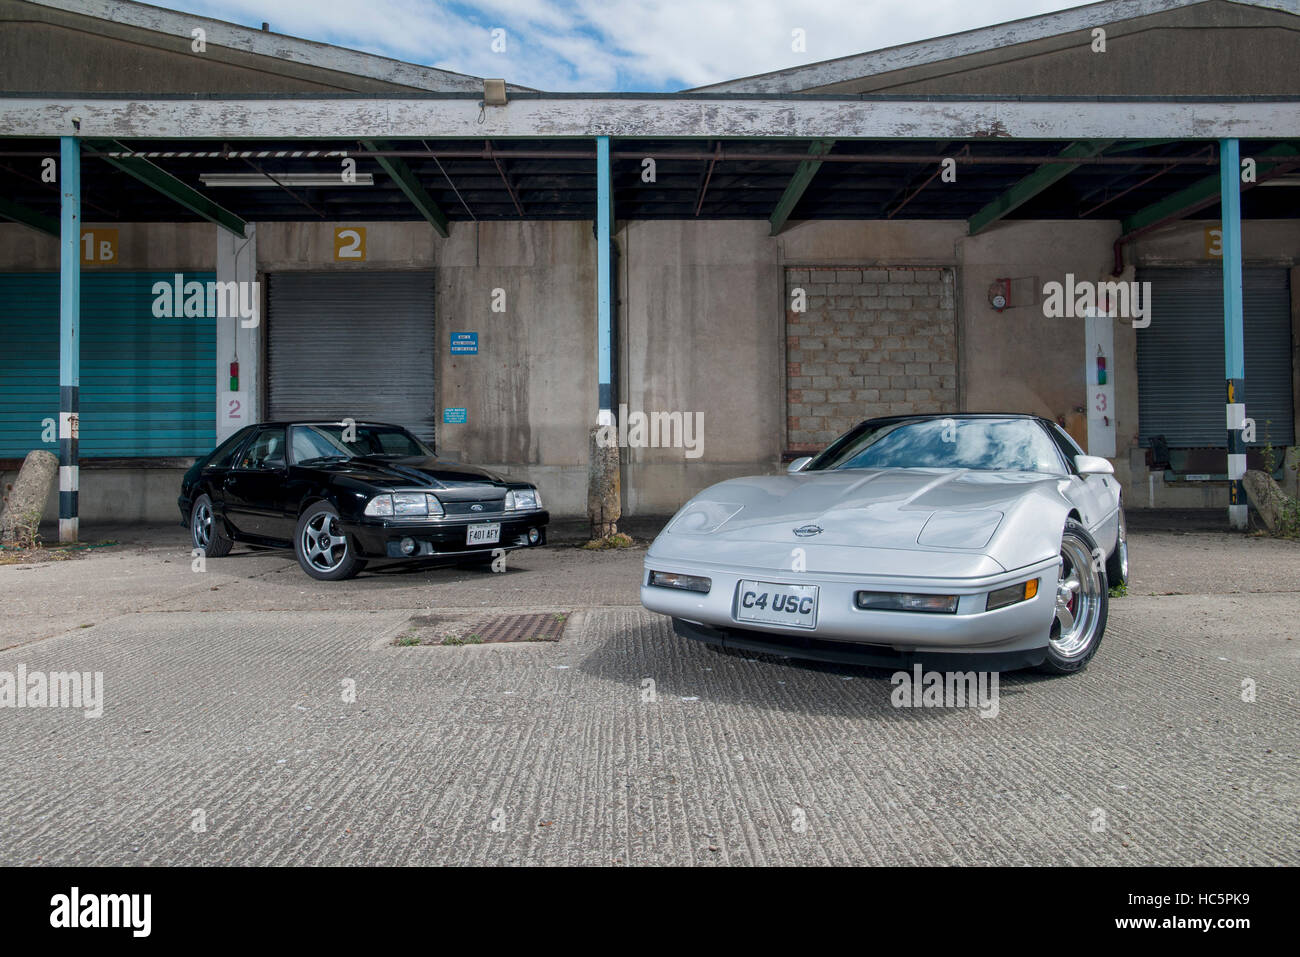 Rivals - Ford Mustang 'Fox' and C4 Corvette, 80s to 90s versions of the long time rival sports cars - Stock Image